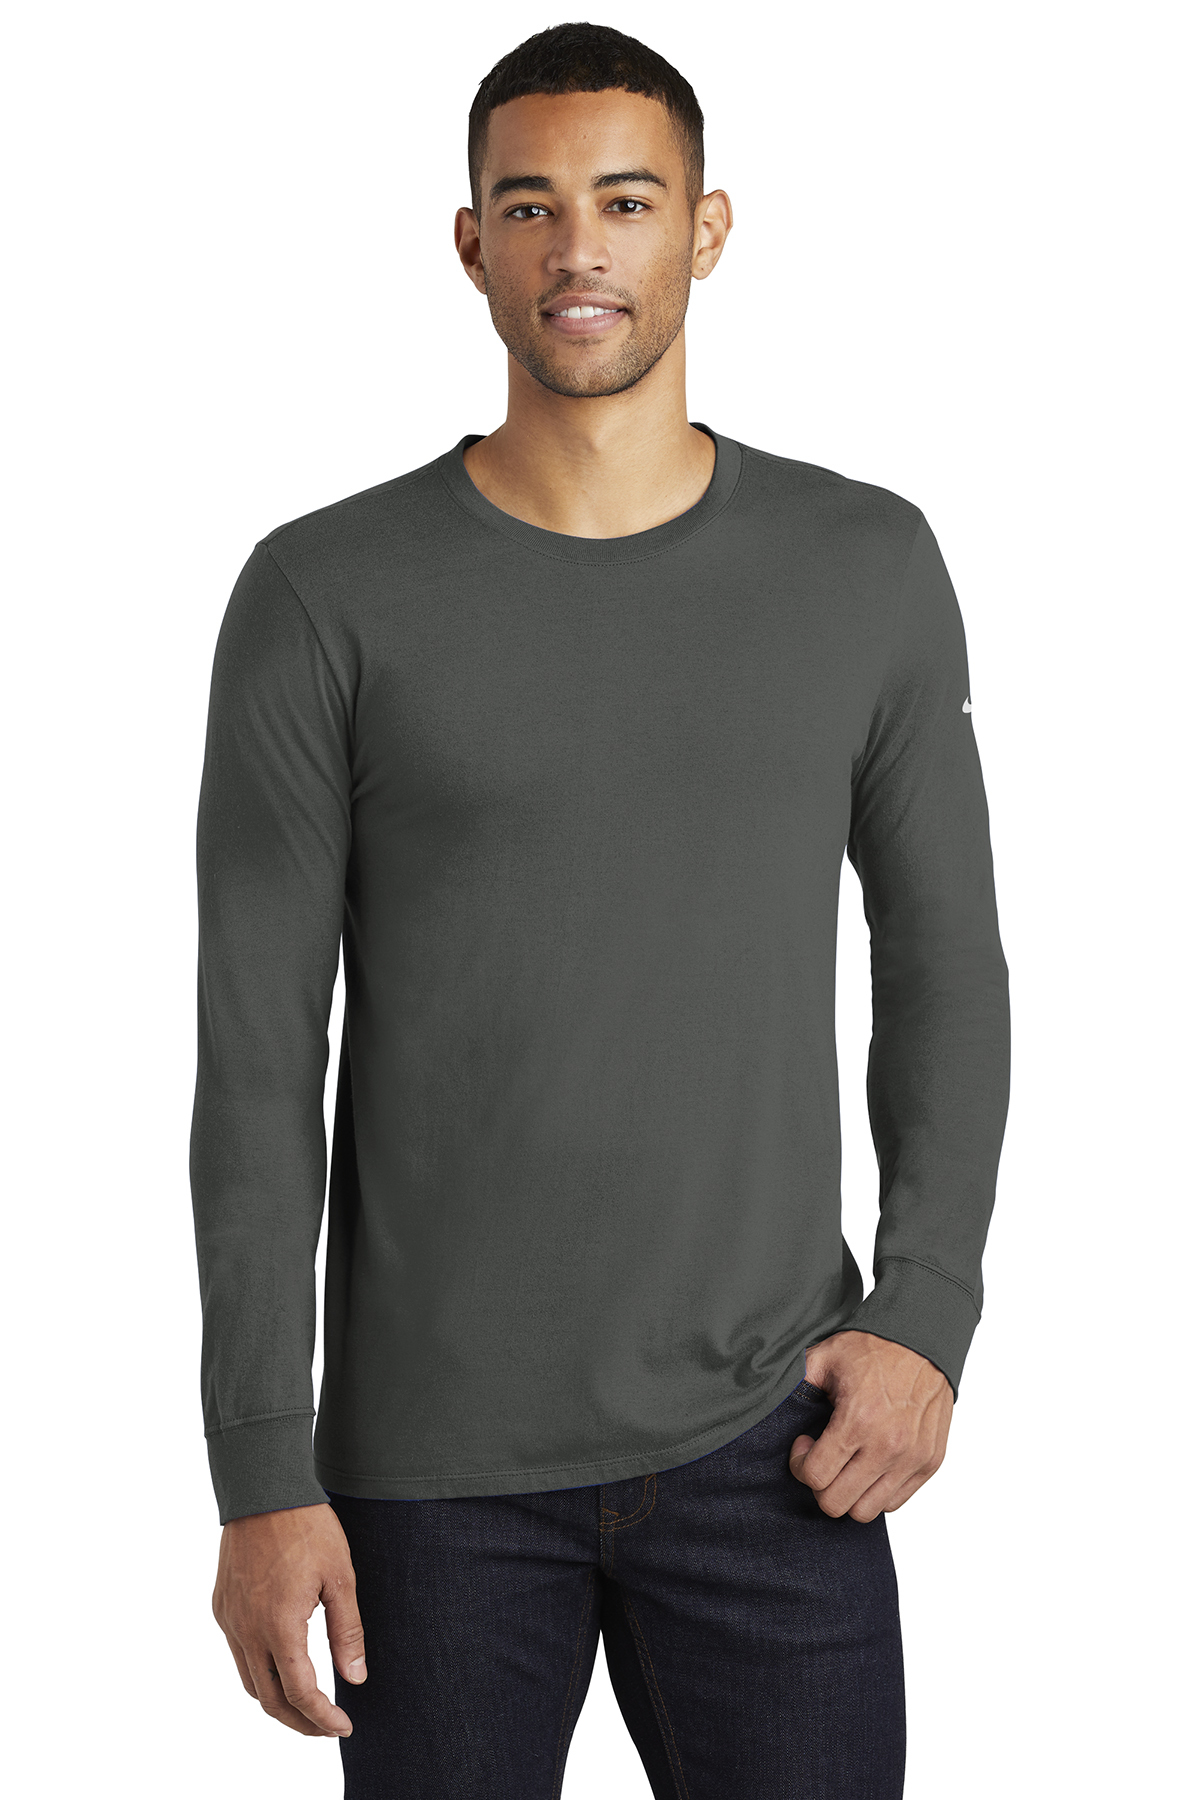 698cc1ff442 Nike Core Cotton Long Sleeve Tee